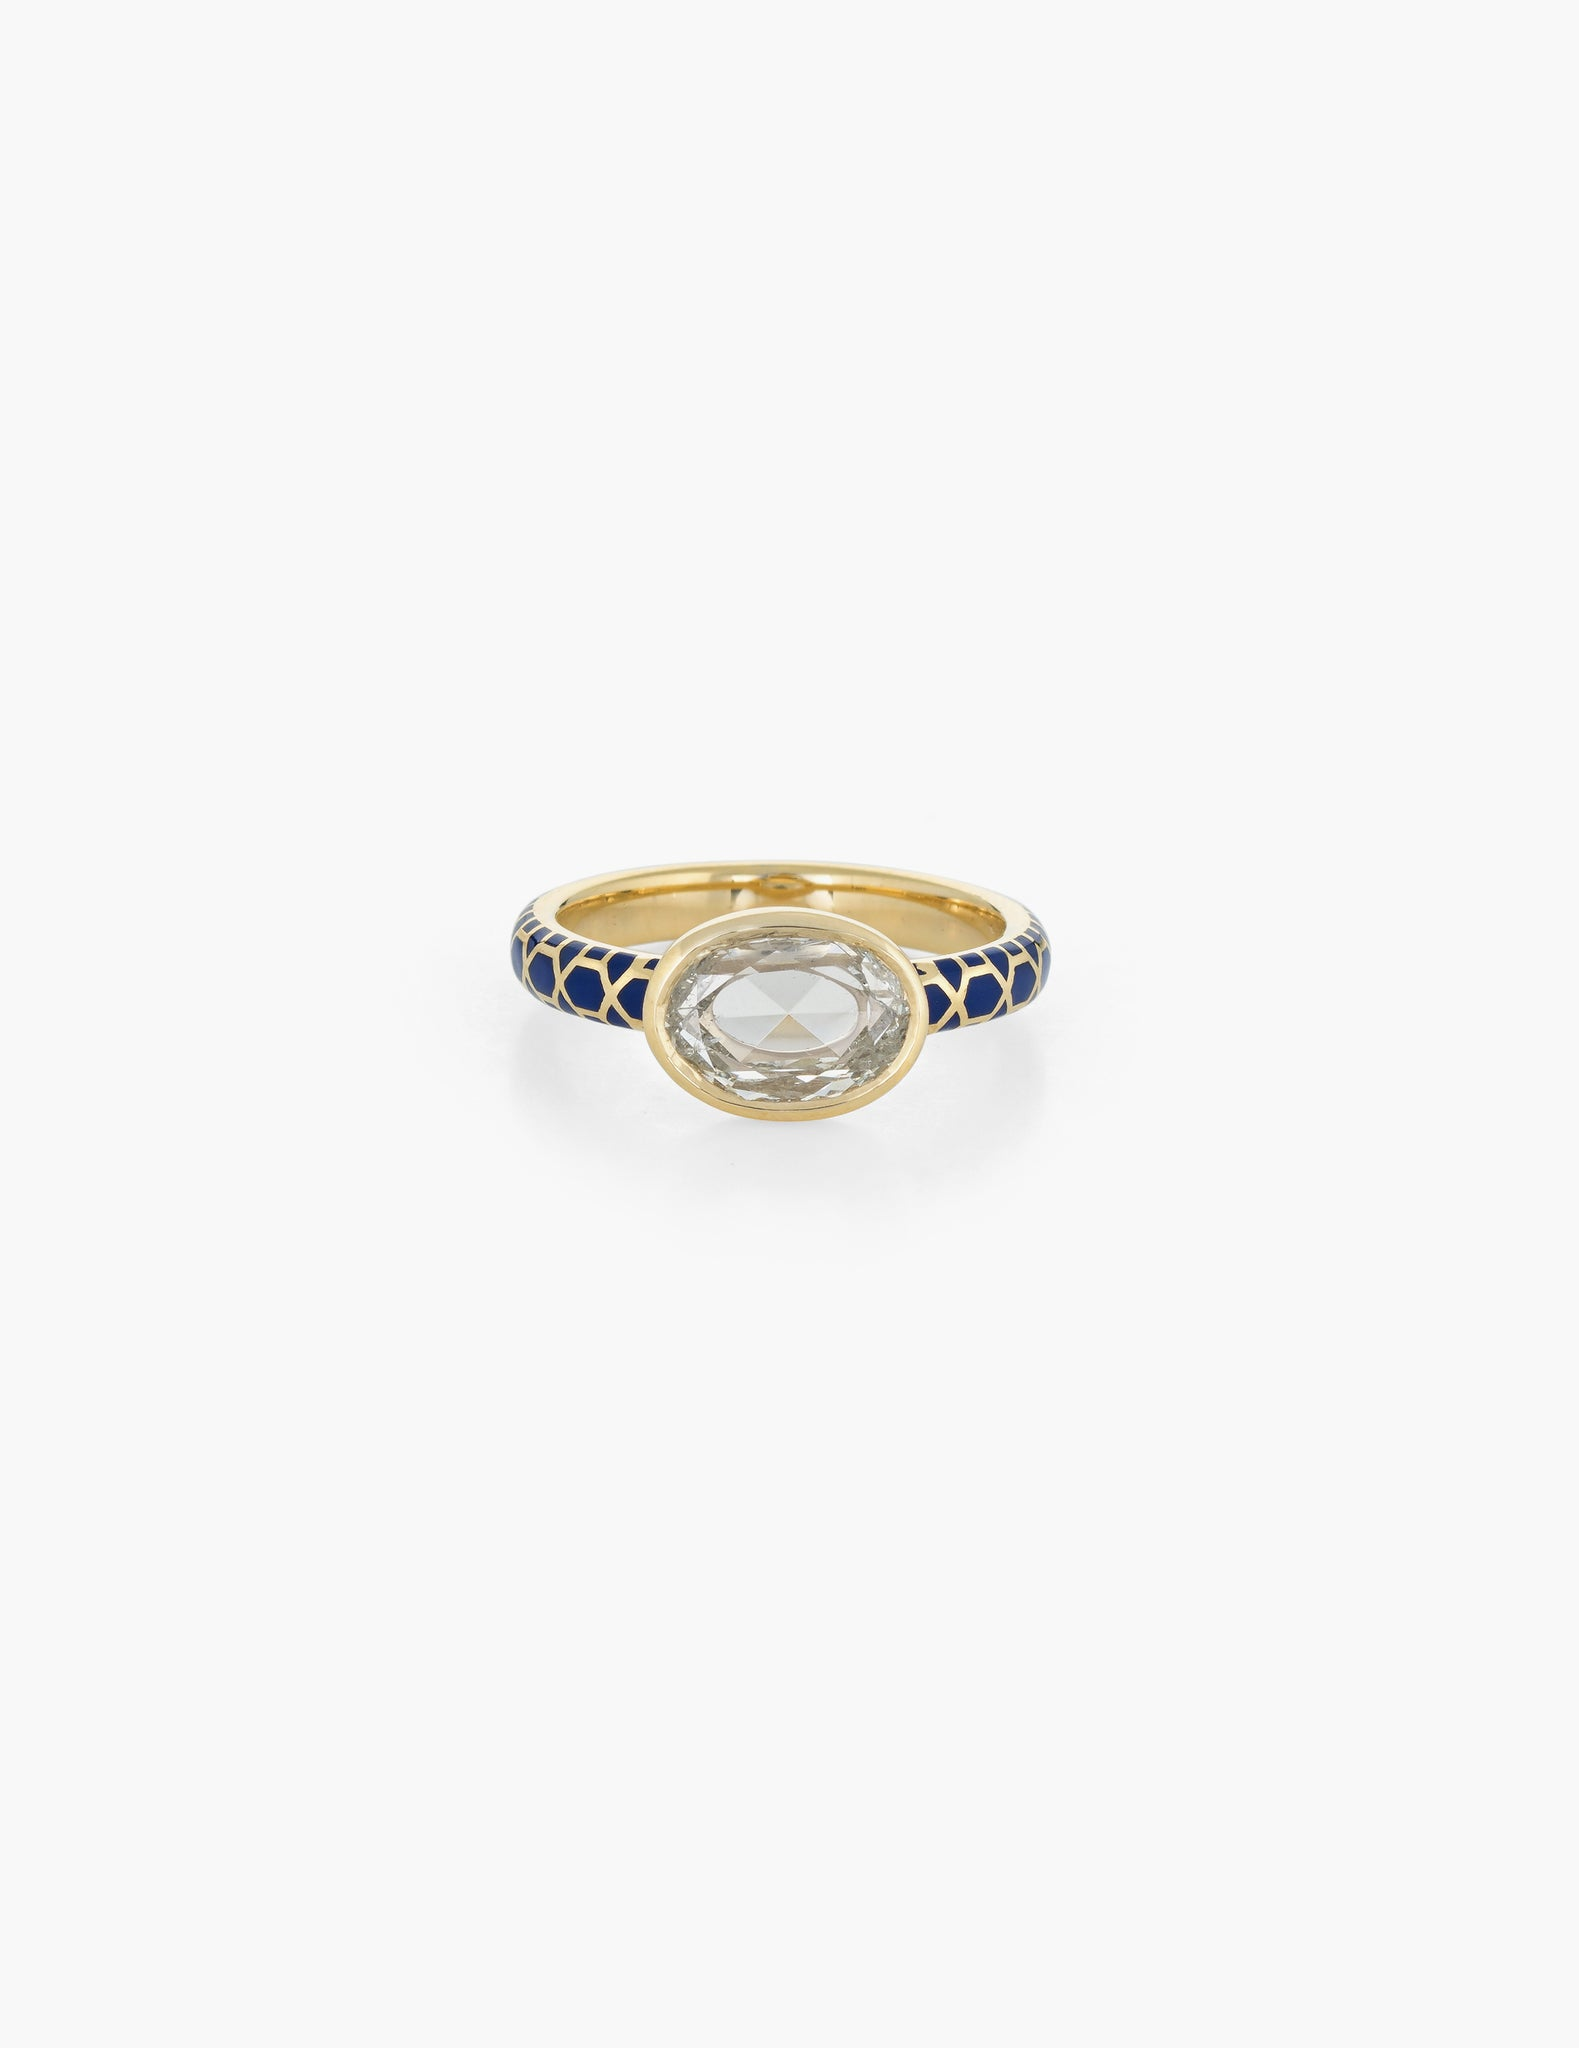 Rose Cut Diamond Ring with enamel band